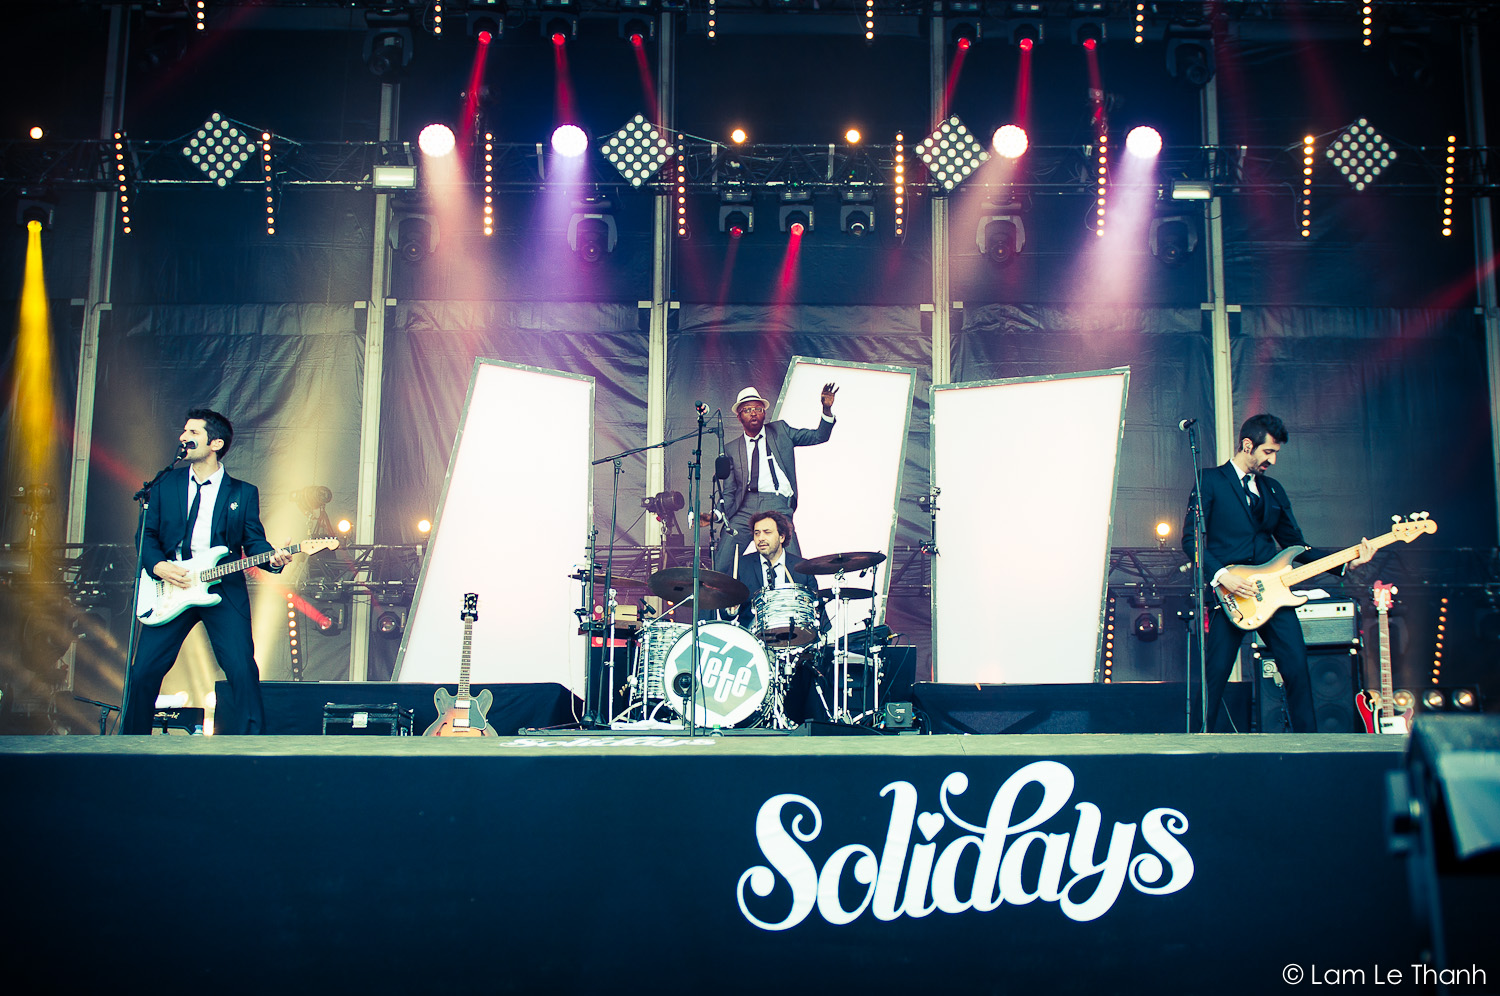 Solidays, 2013, ©, Le Thanh Lam, tete